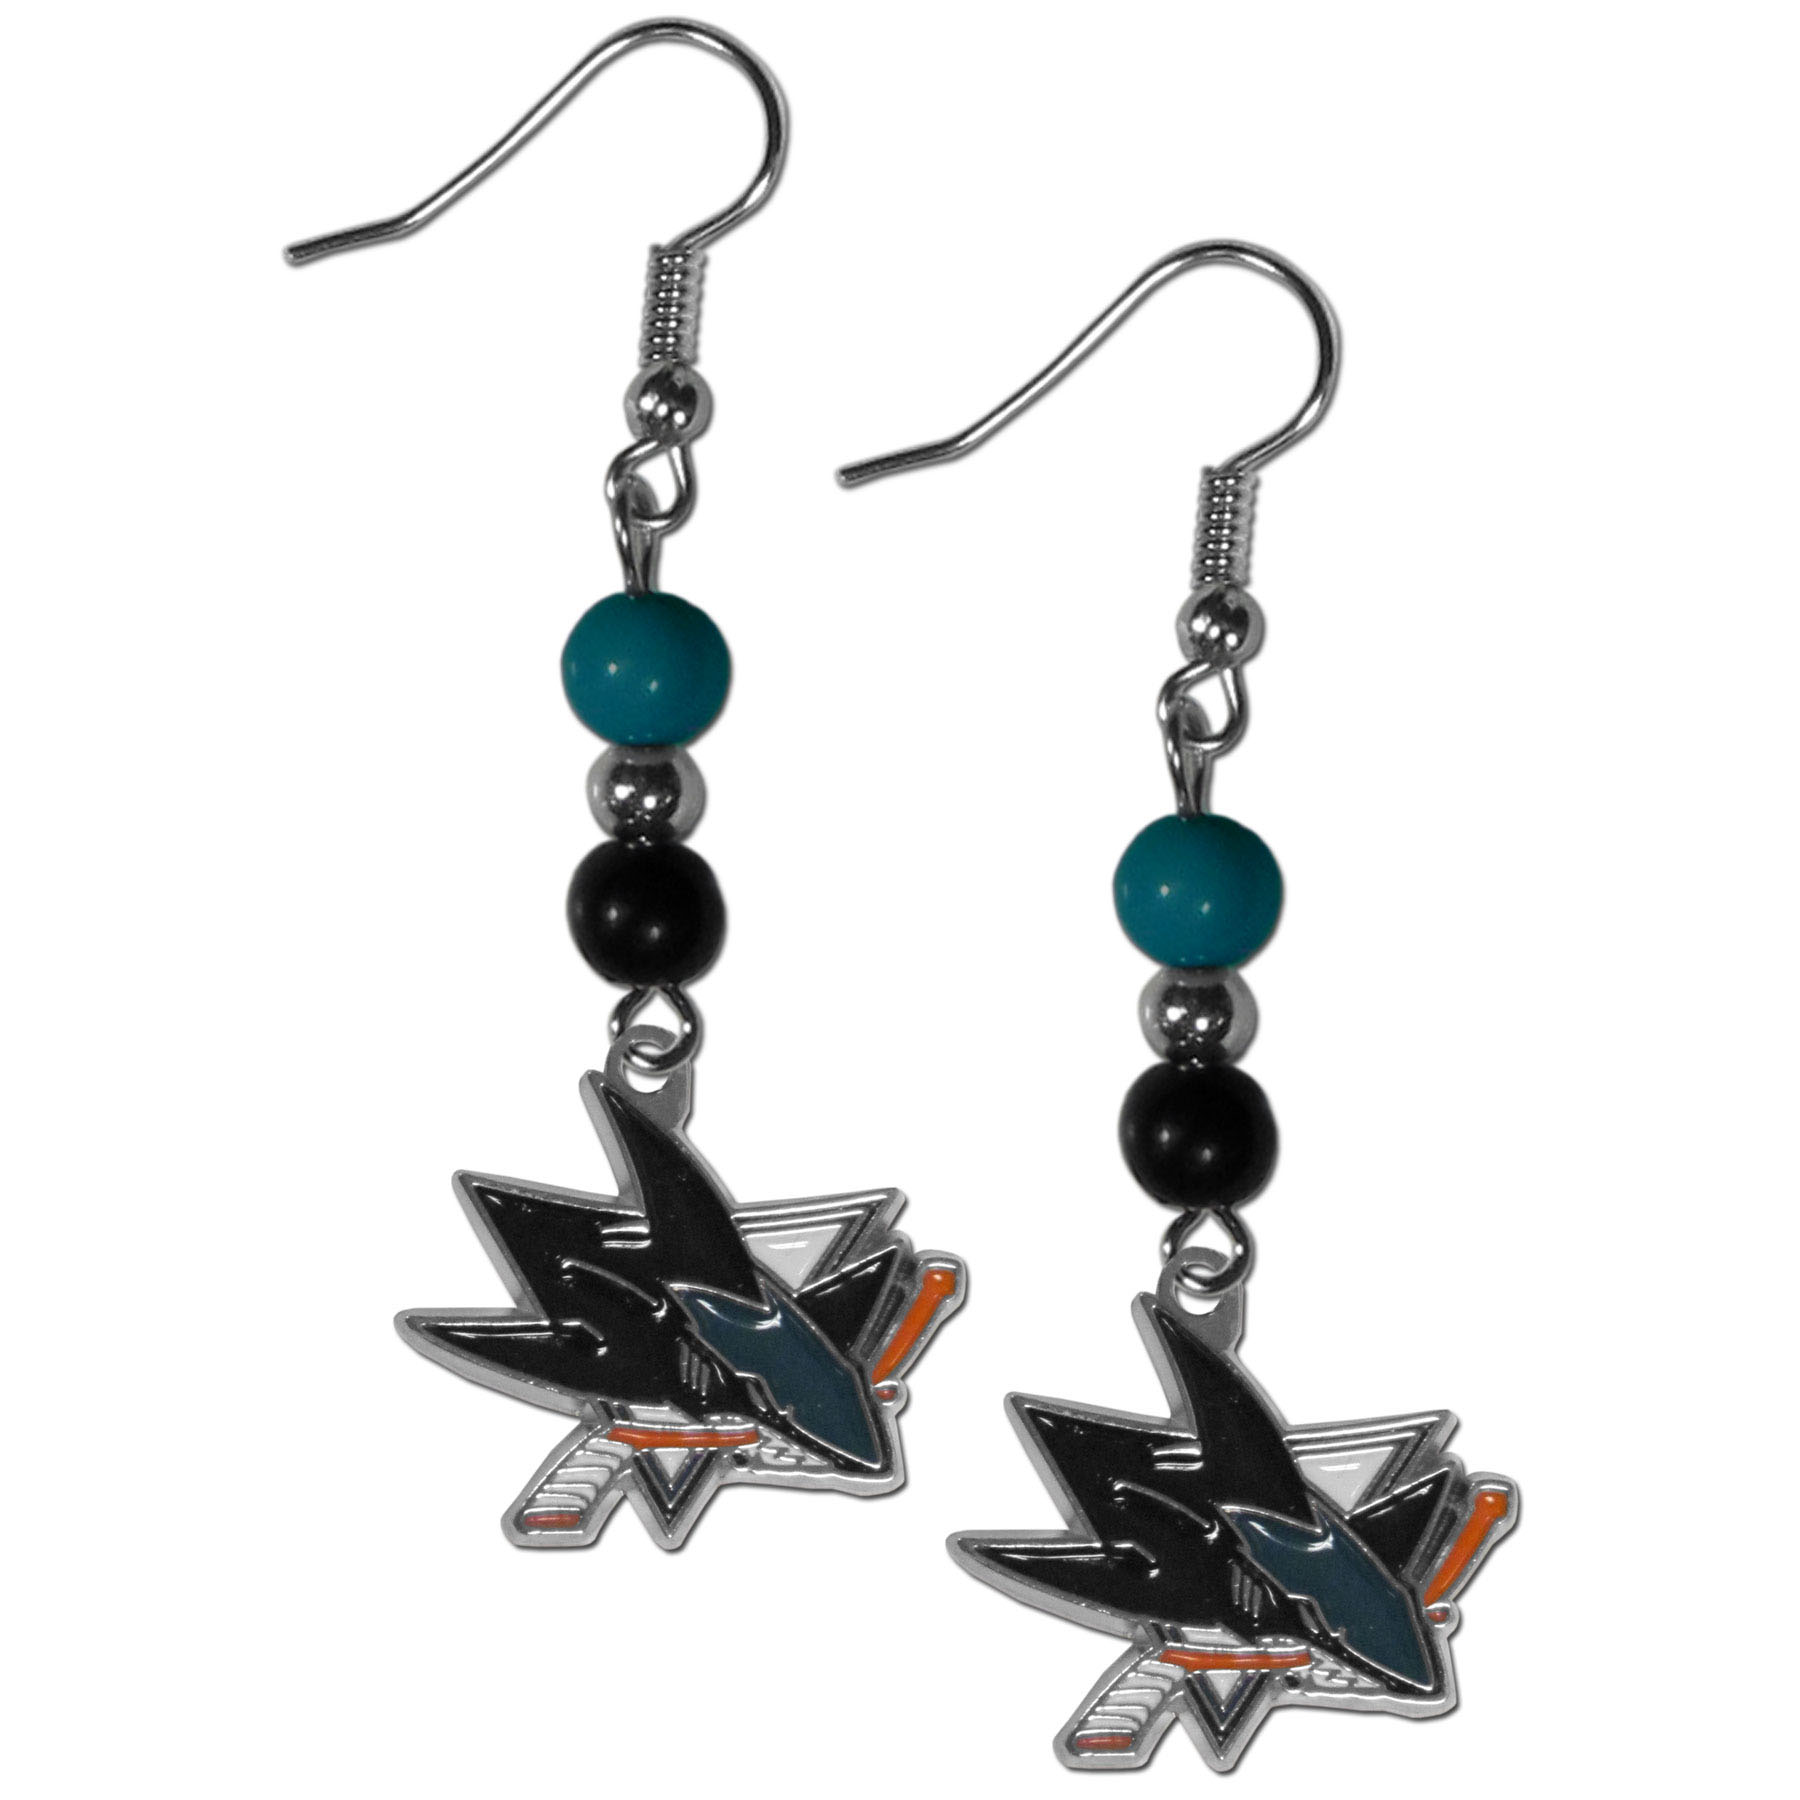 San Jose Sharks® Fan Bead Dangle Earrings - Love your team, show it off with our San Jose Sharks® bead dangle earrings! These super cute earrings hang approximately 2 inches and features 2 team colored beads and a high polish team charm. A must have for game day!